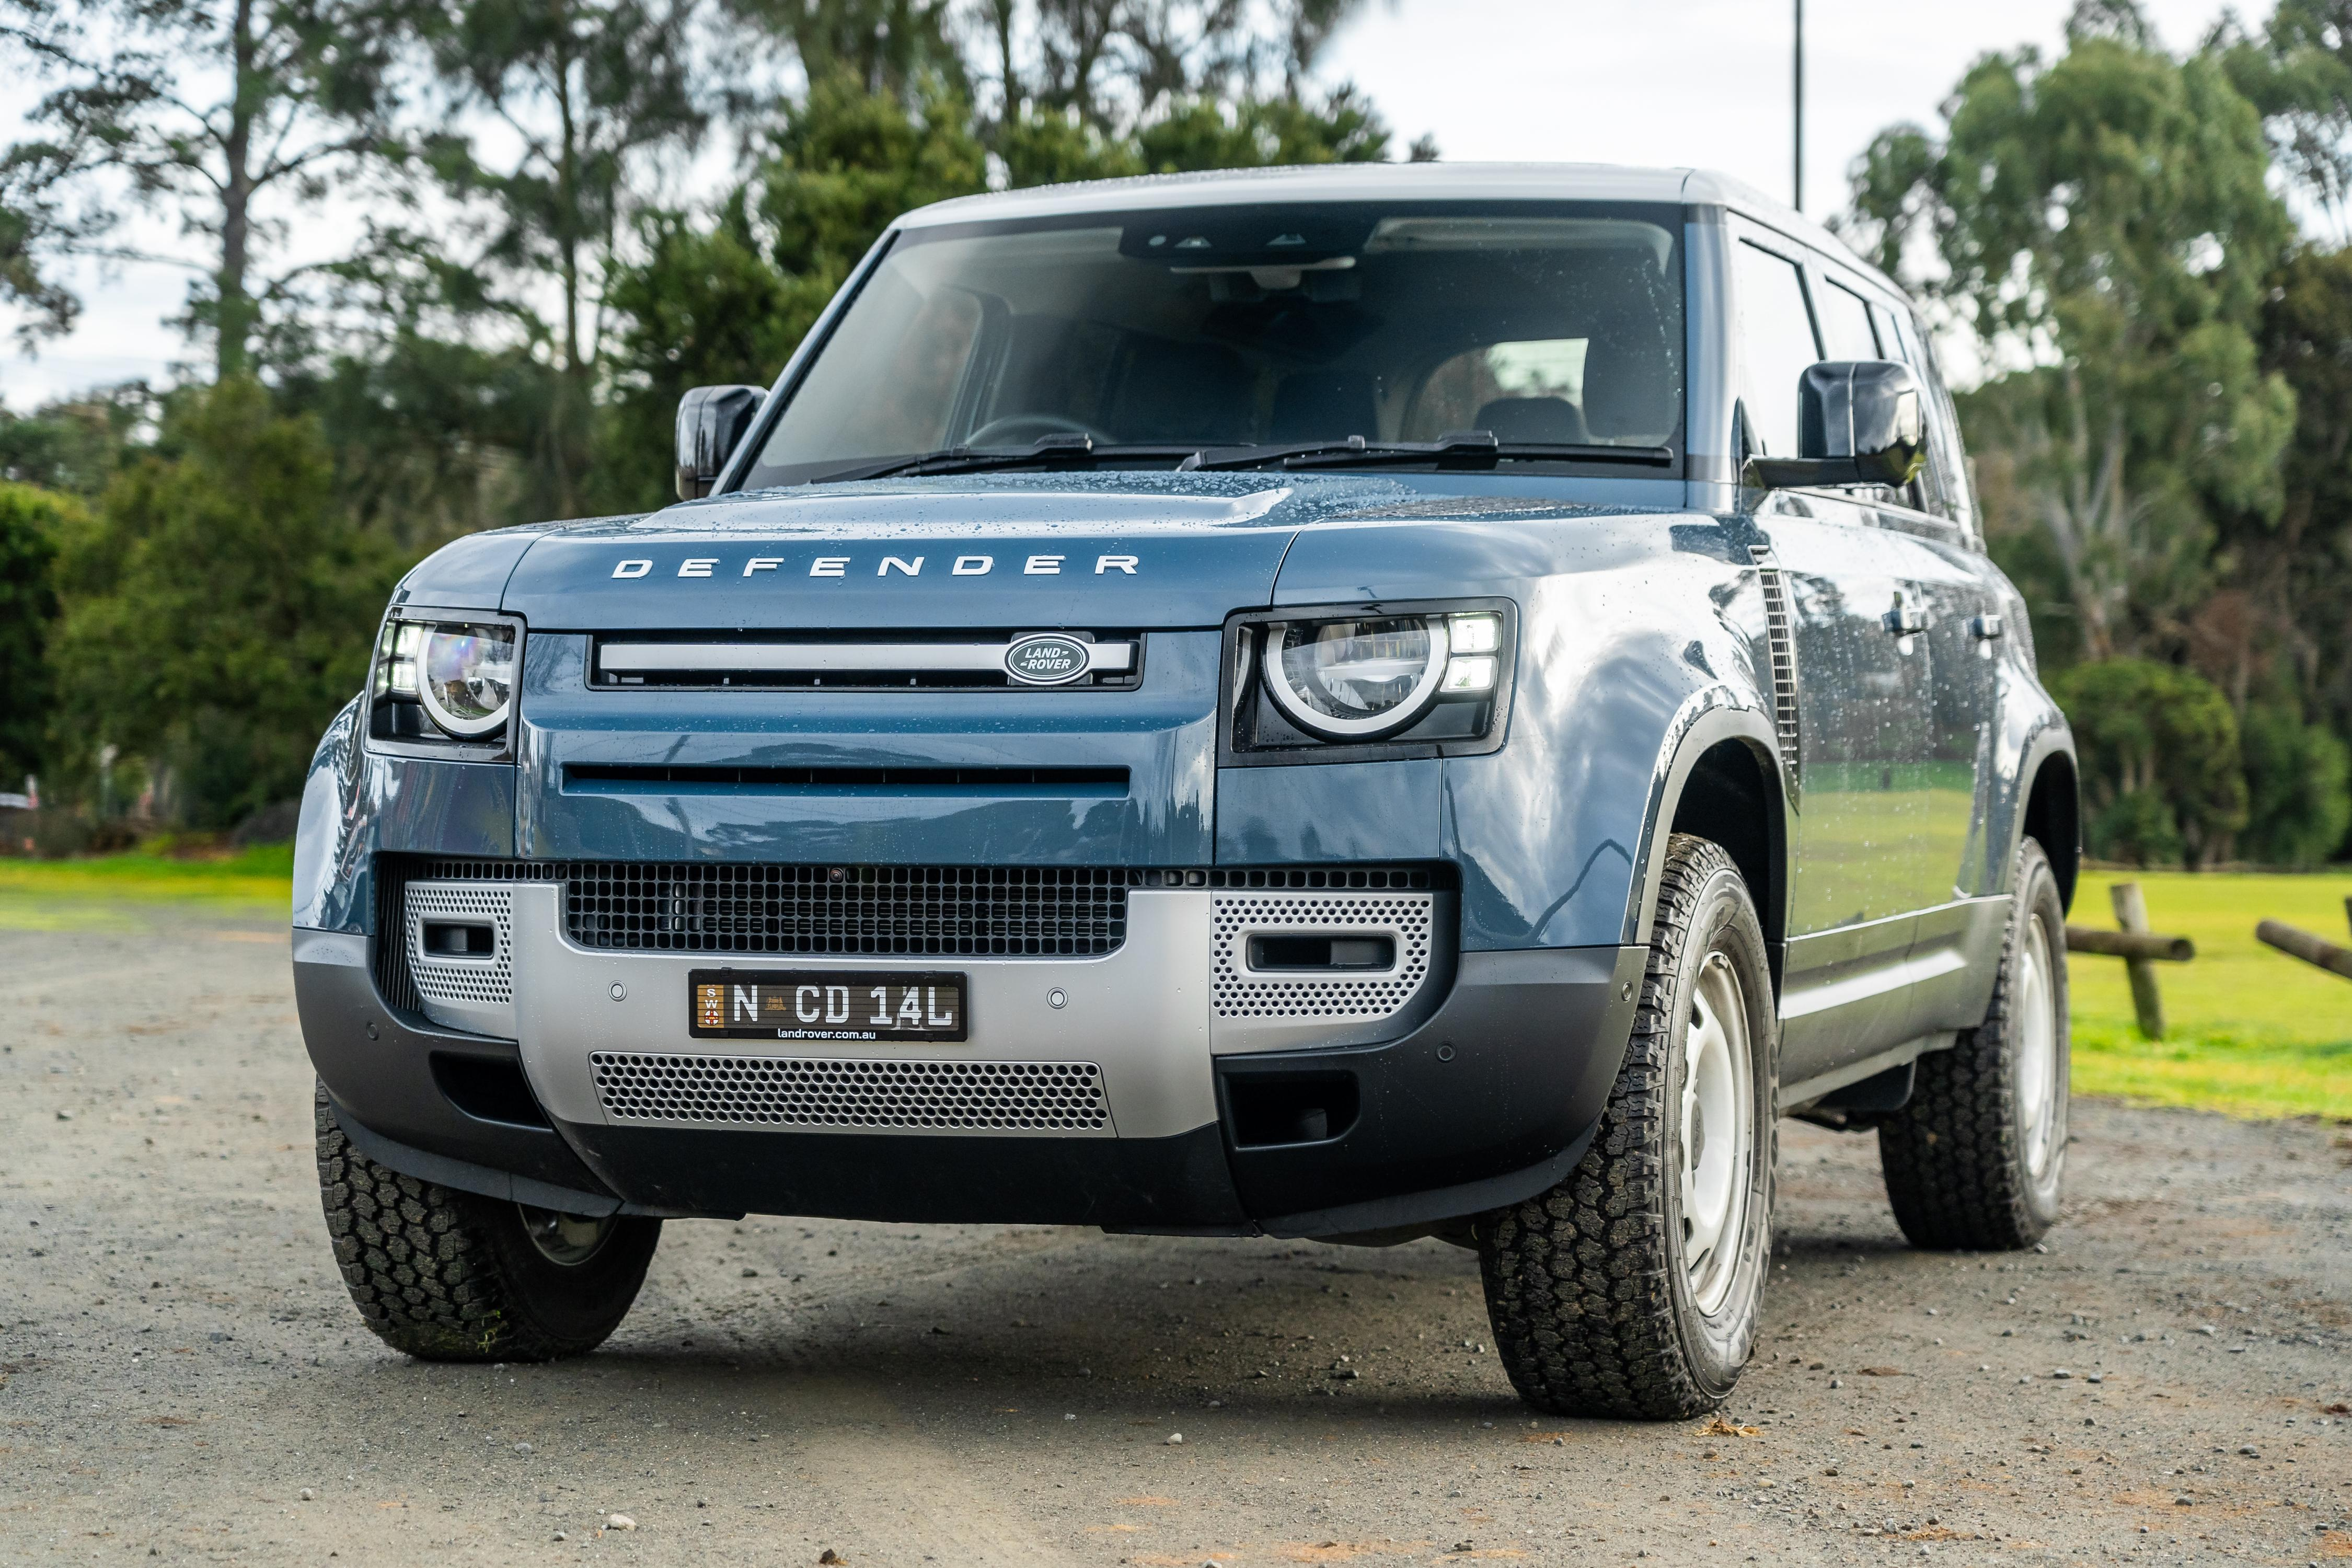 2022 Land Rover Defender 110 review